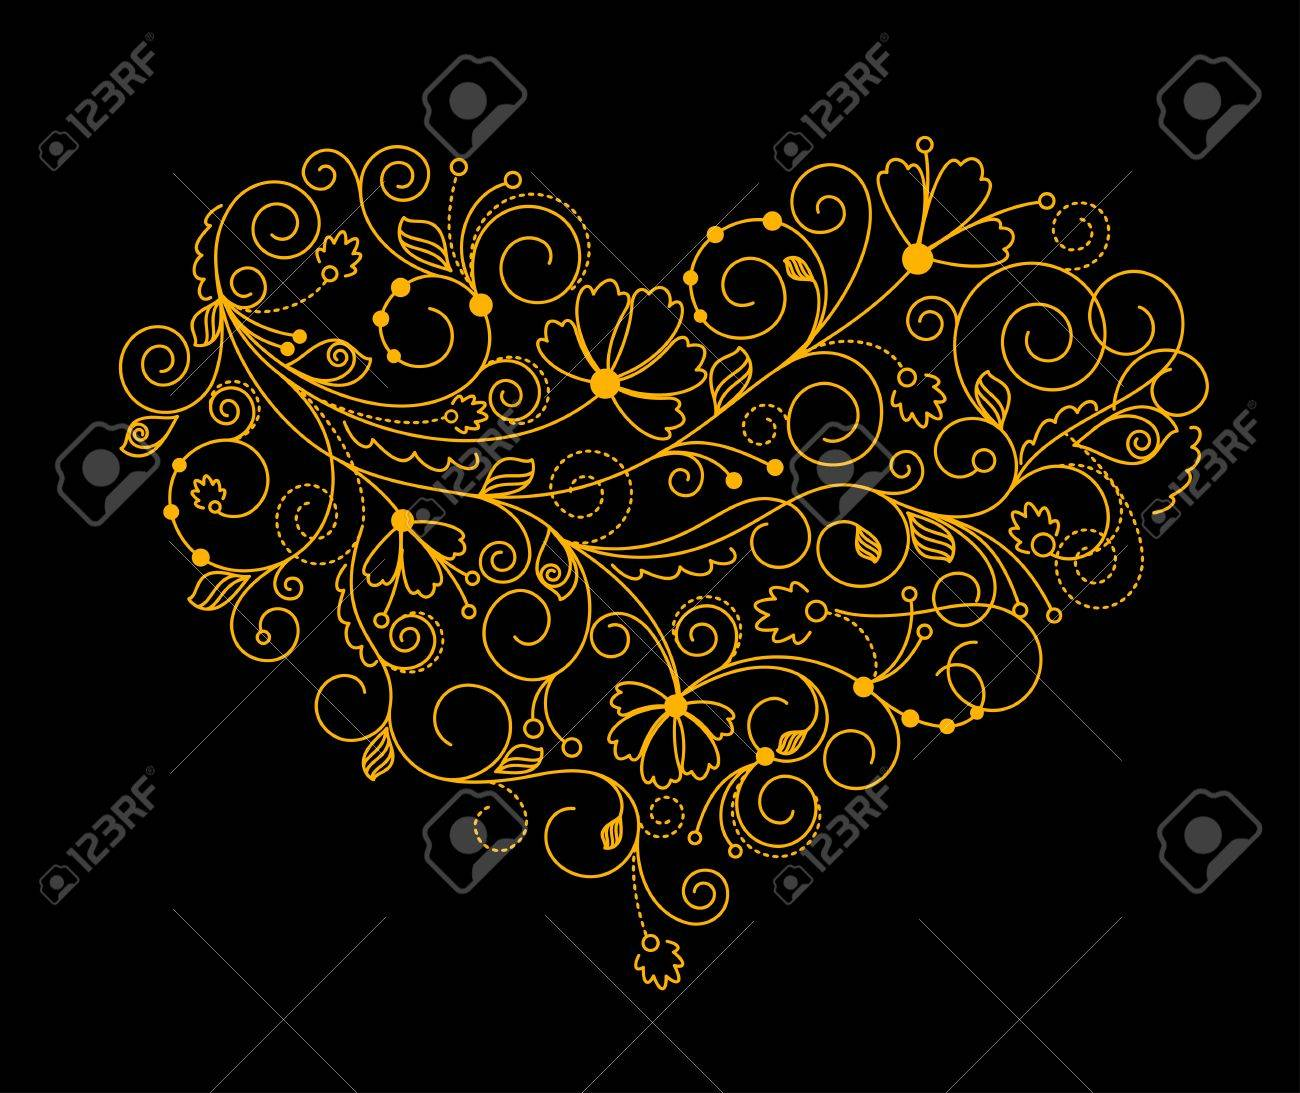 Abstract floral heart background for textile or invitation card design Stock Vector - 11006275